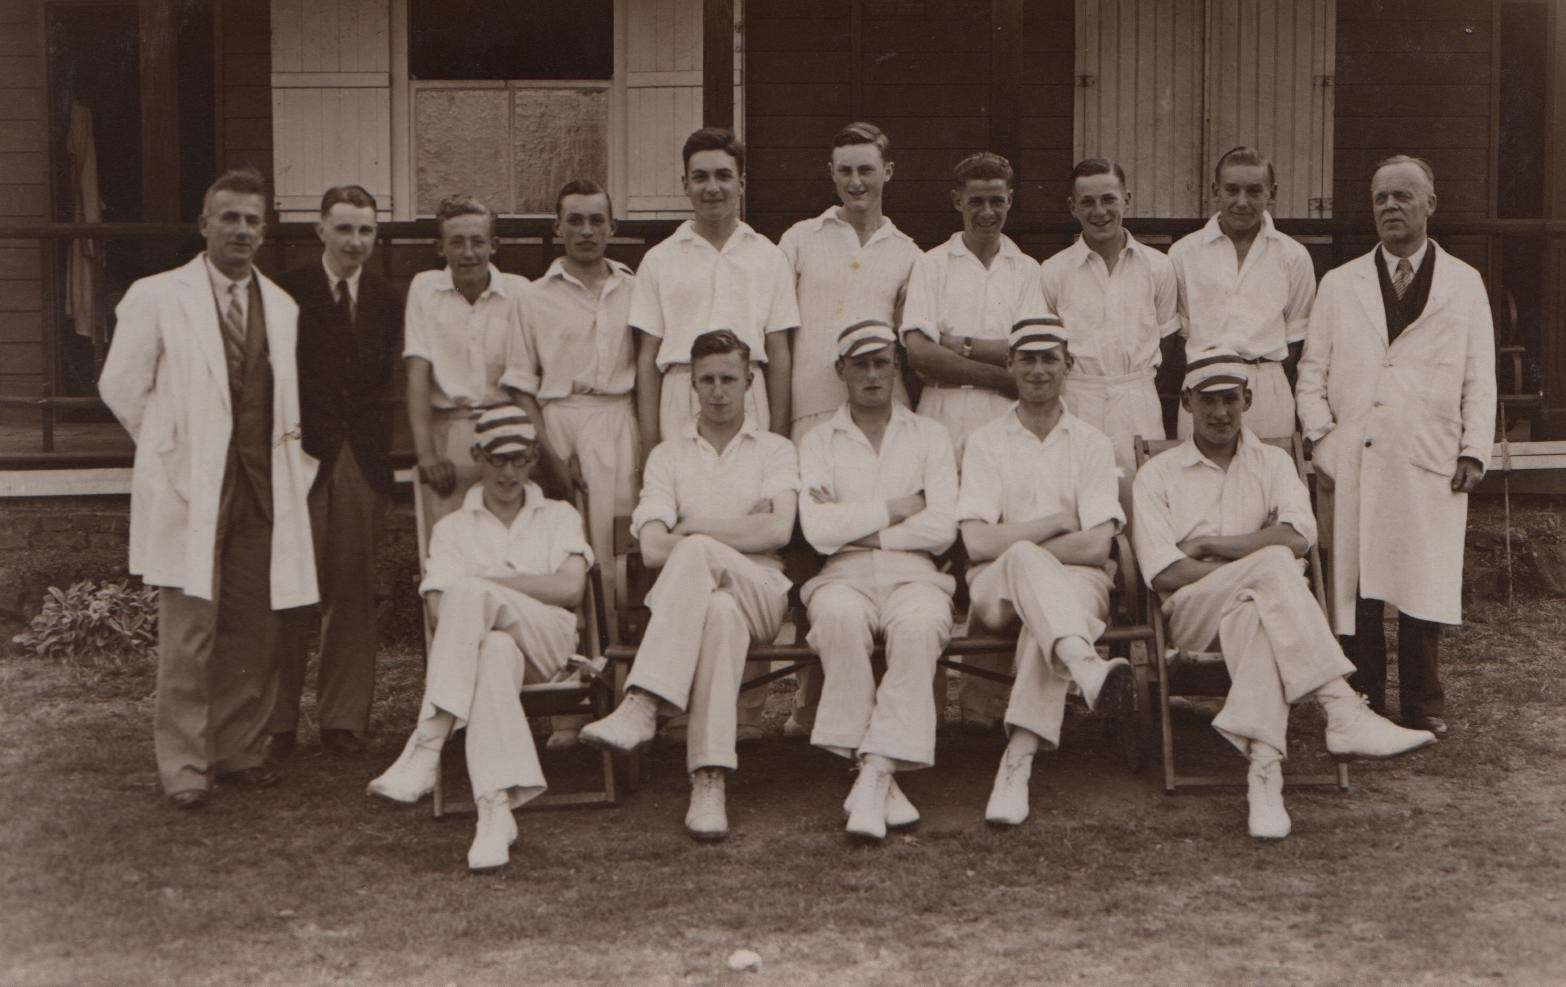 1936 Southend High School cricket 1st XI David first on left right, front row